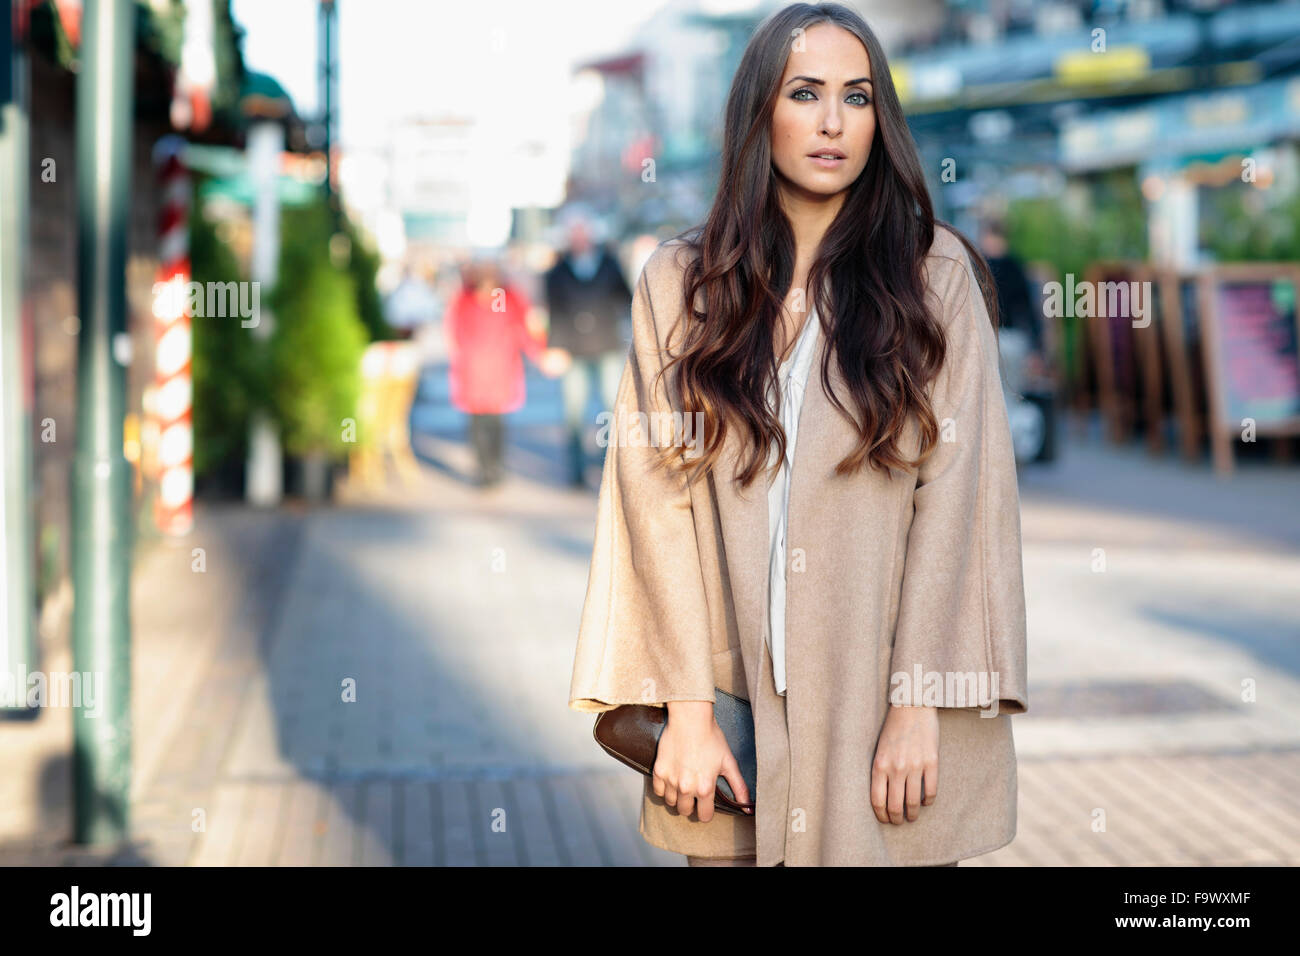 78f53cbab772c Portrait of young woman with long brown hair wearing light brown coat